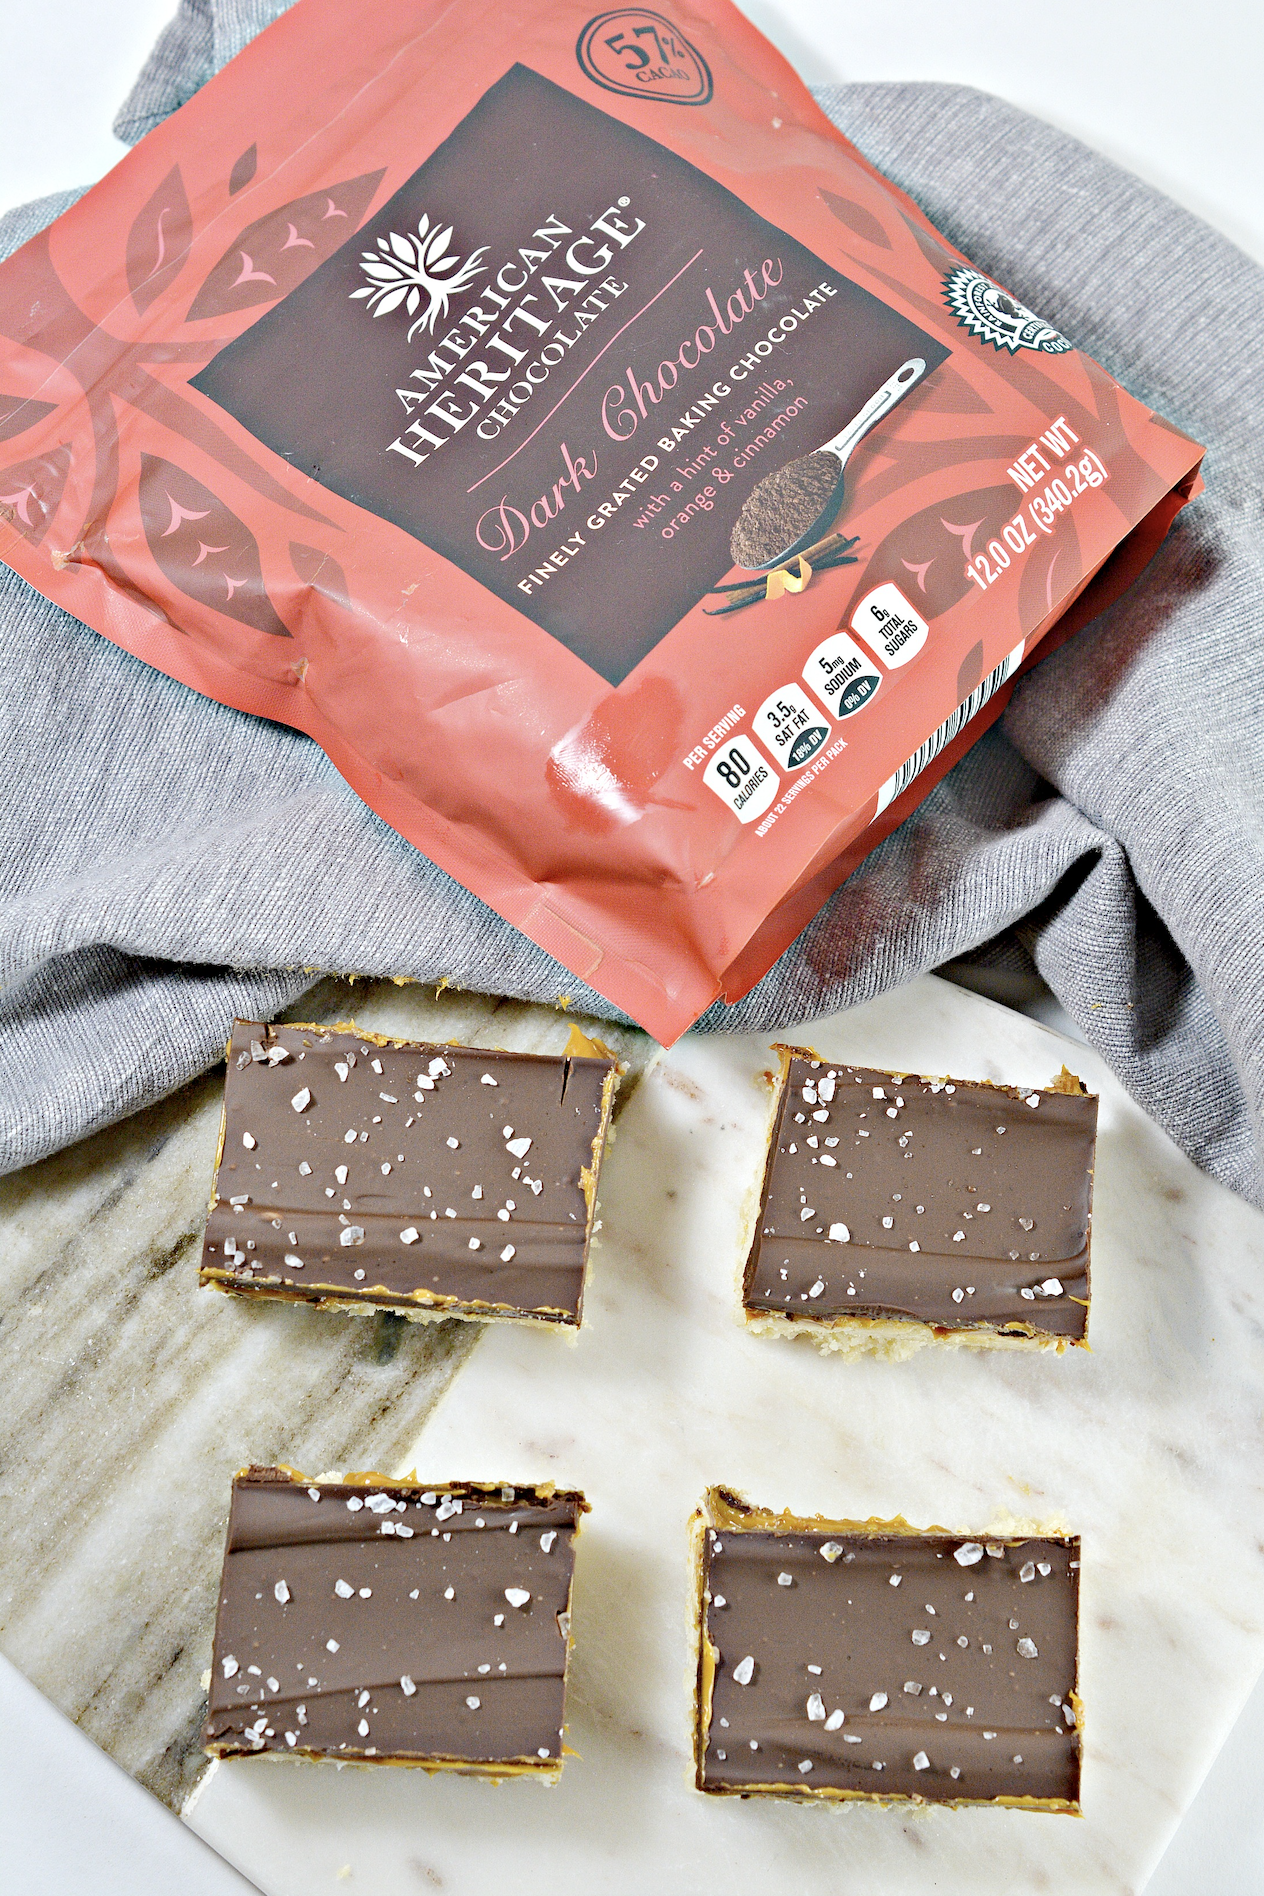 If you love chocolate and caramel, you'll love this easy Caramel Slice recipe made with AMERICAN HERITAGE Finely Grated Baking Chocolate! #ad #baking #familybaking #bakingguide @Chochistory